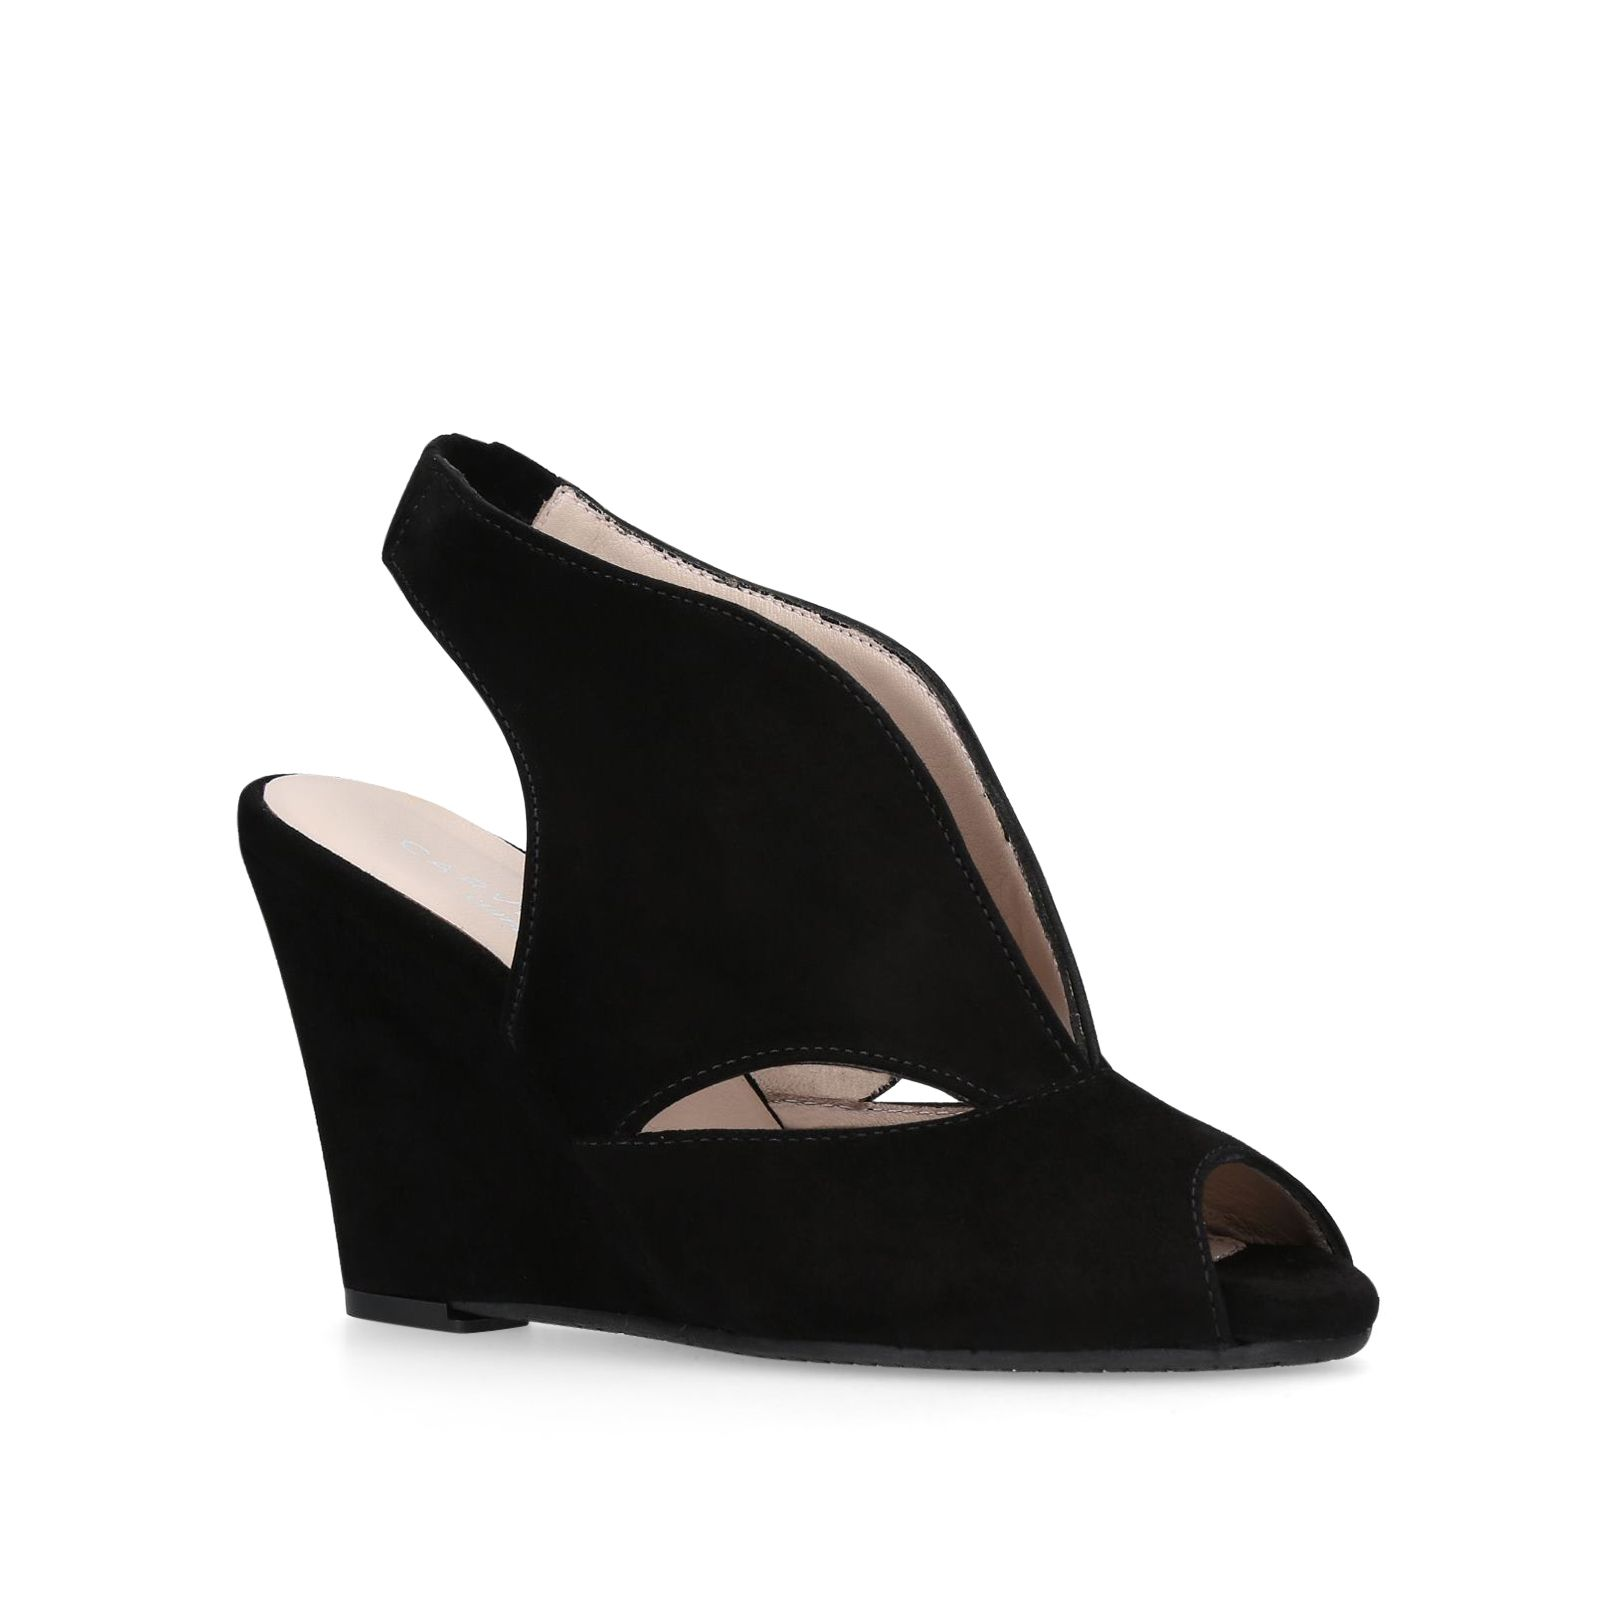 Carvela Comfort Alexa Sandals, Black